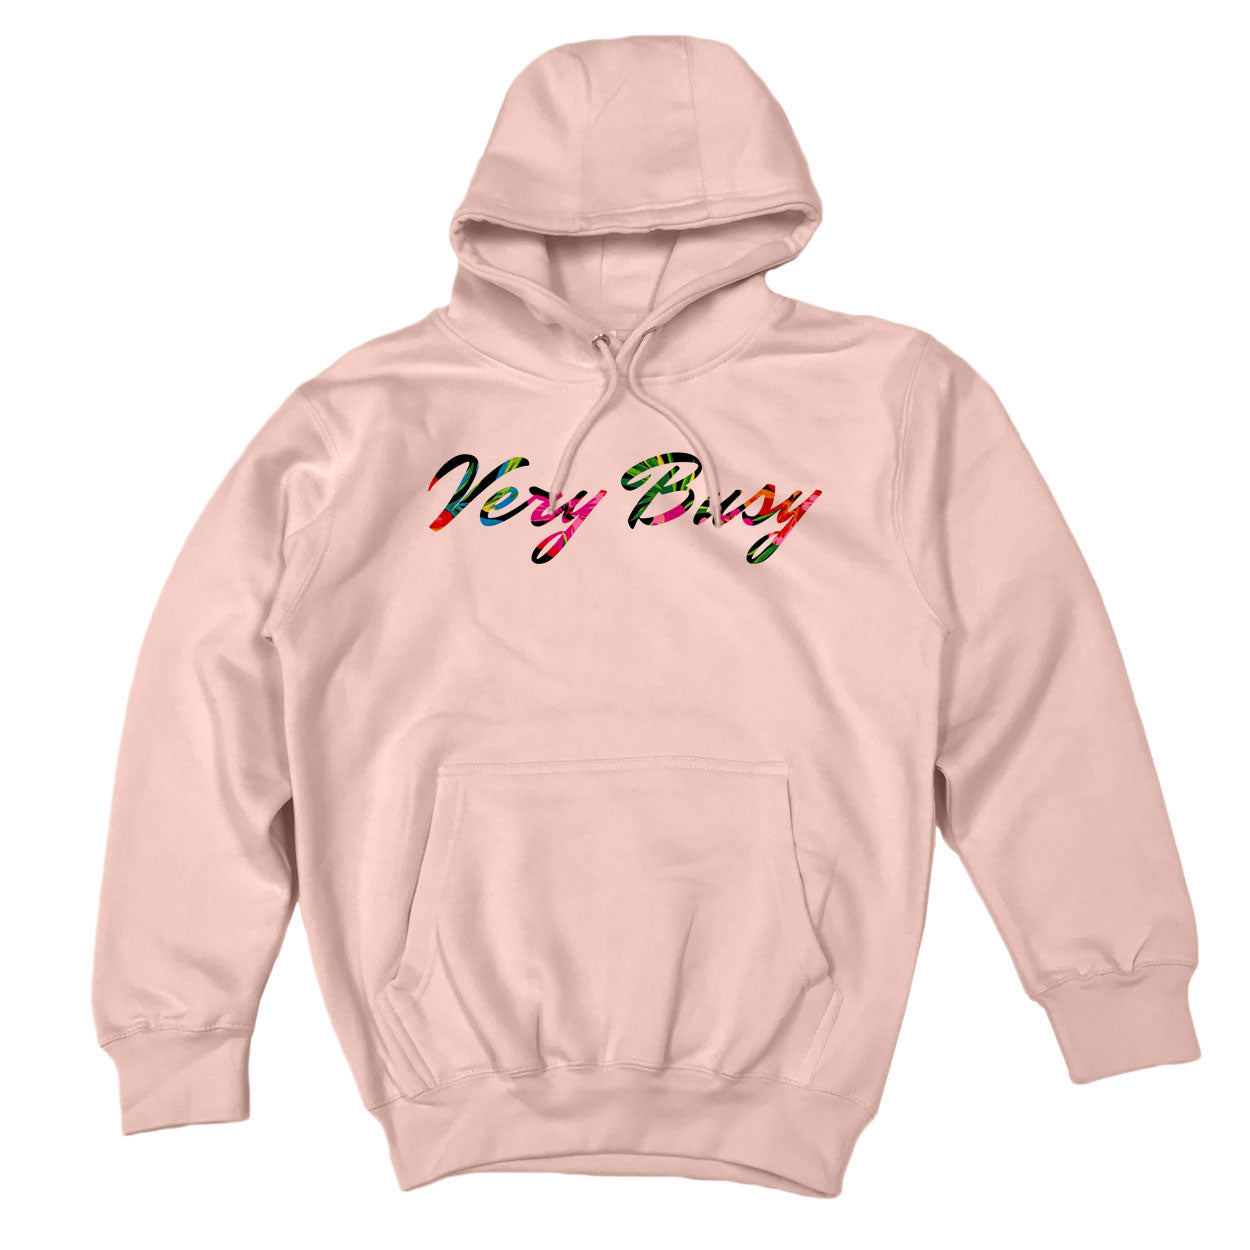 Very Busy Hoodie - Work Smarter Lifestyle